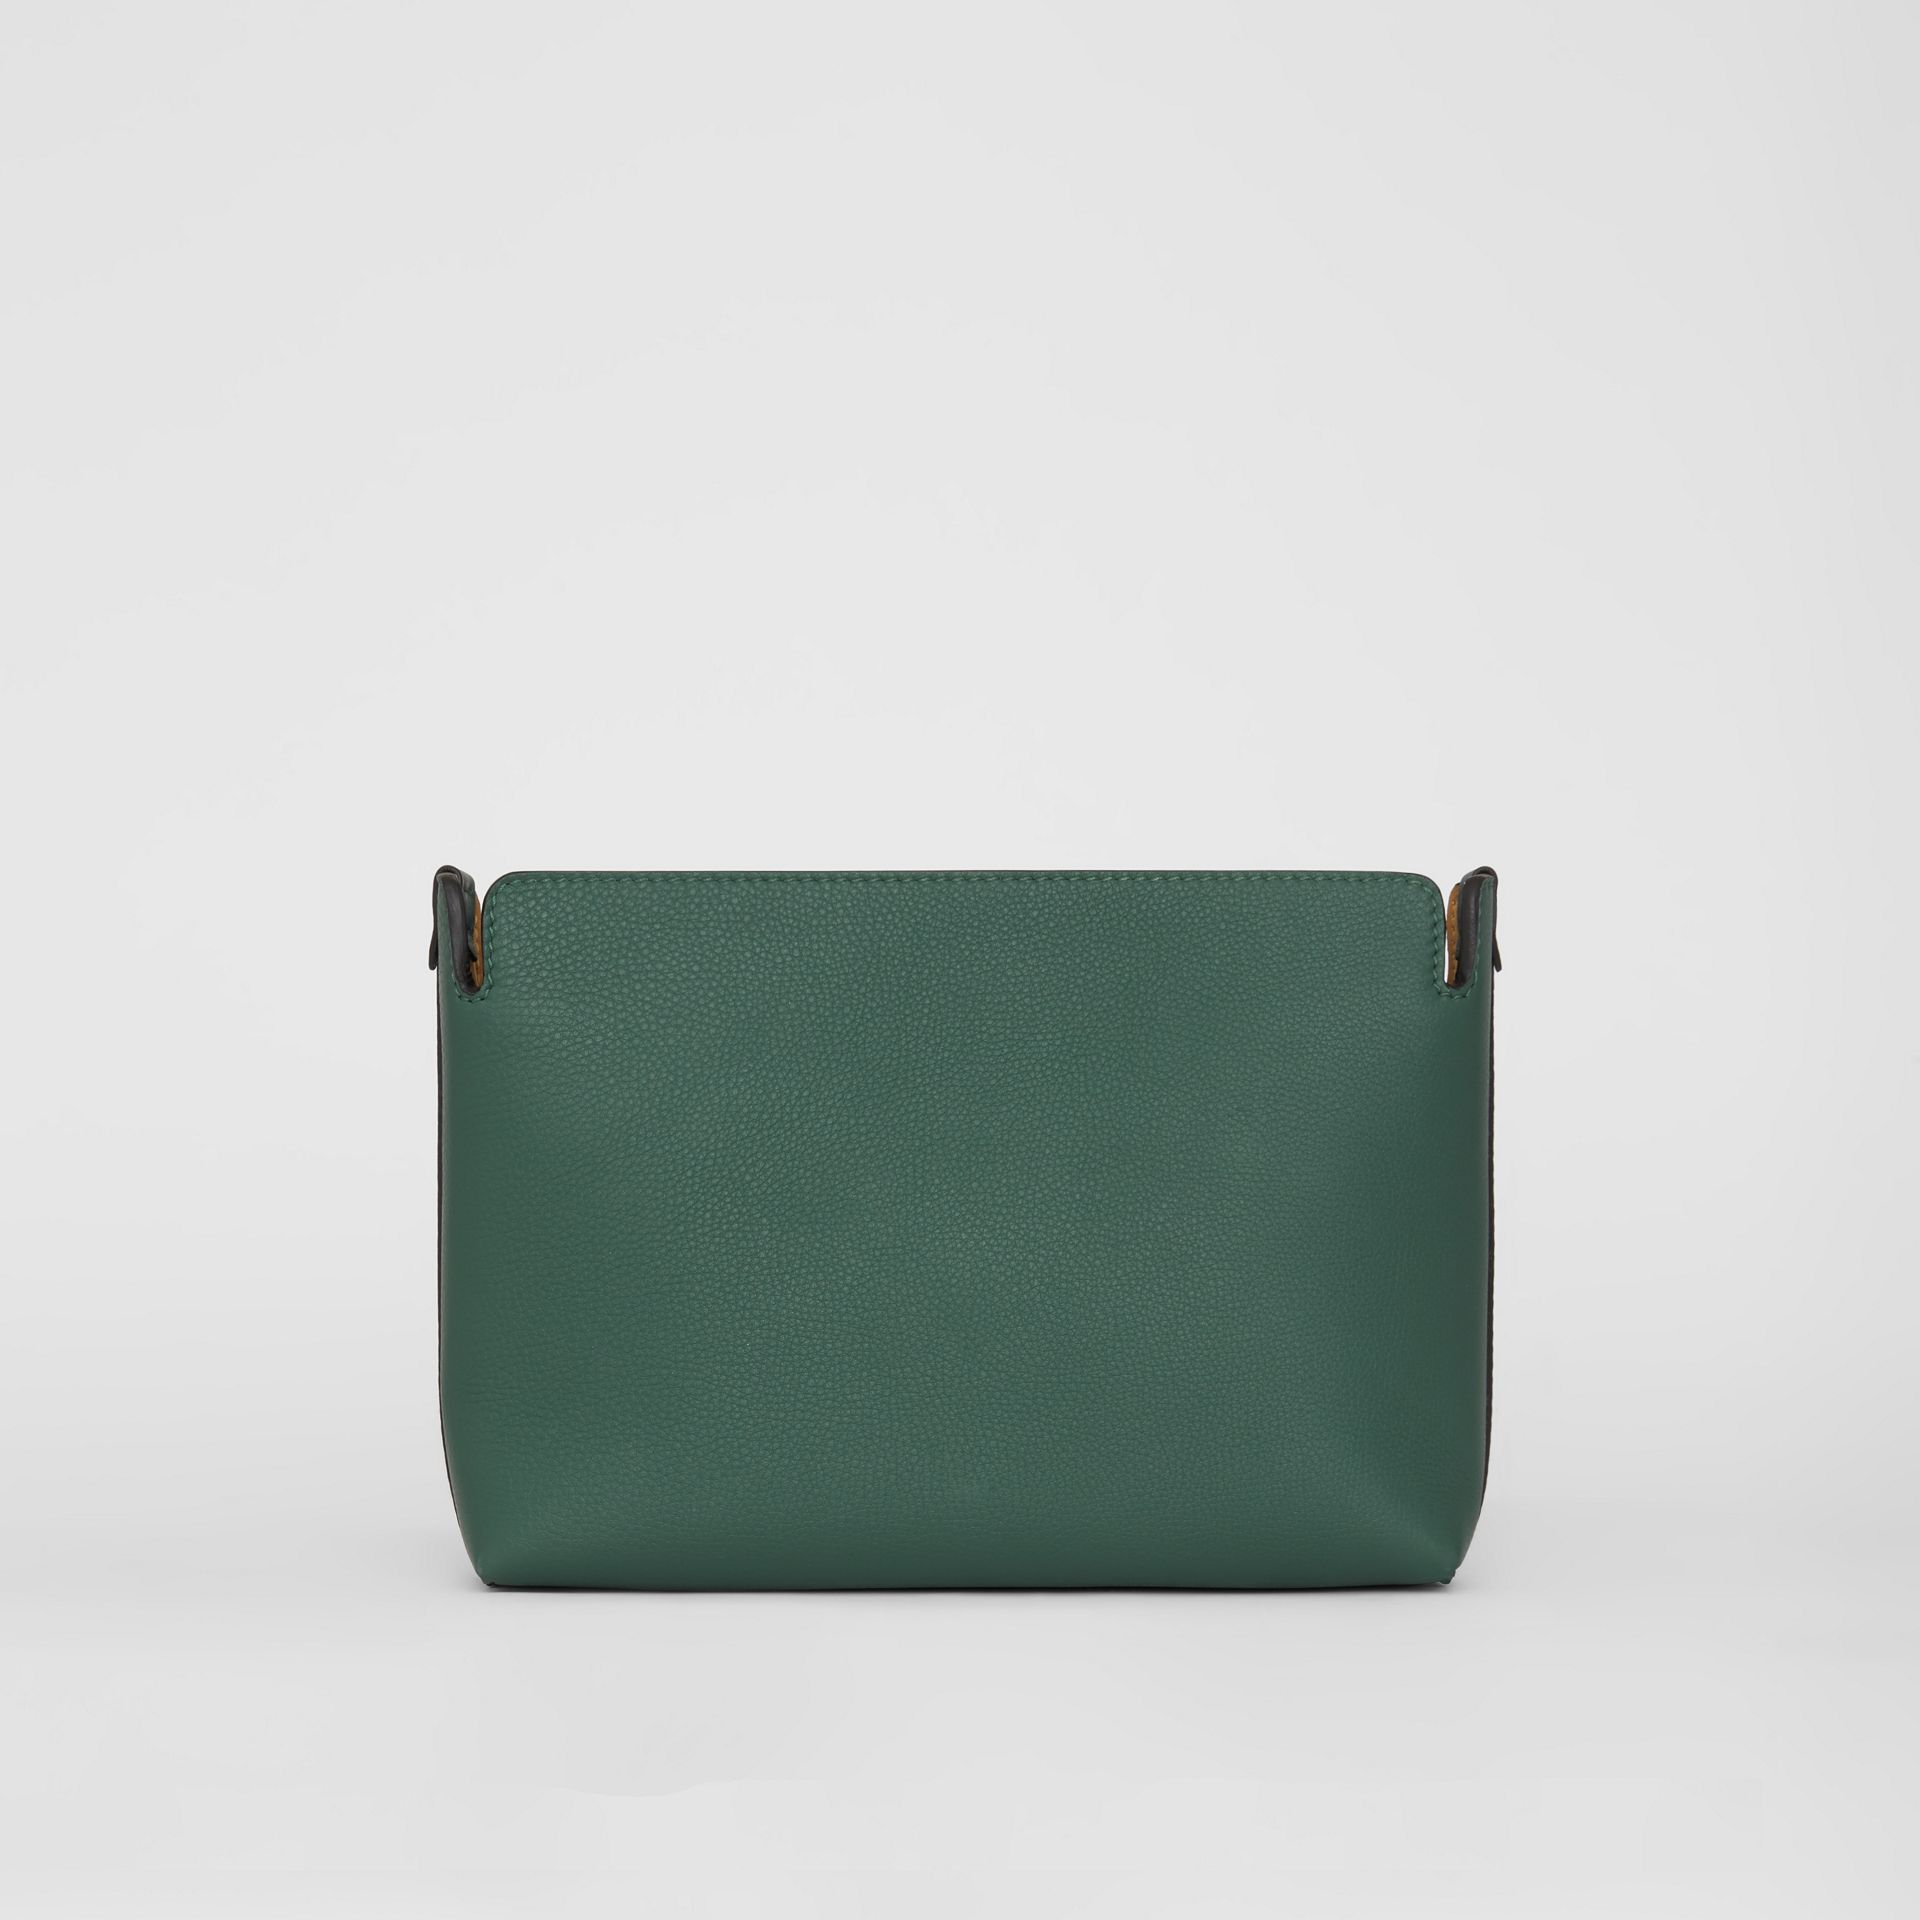 Medium Tri-tone Leather Clutch in Black/sea Green - Women | Burberry United Kingdom - gallery image 7